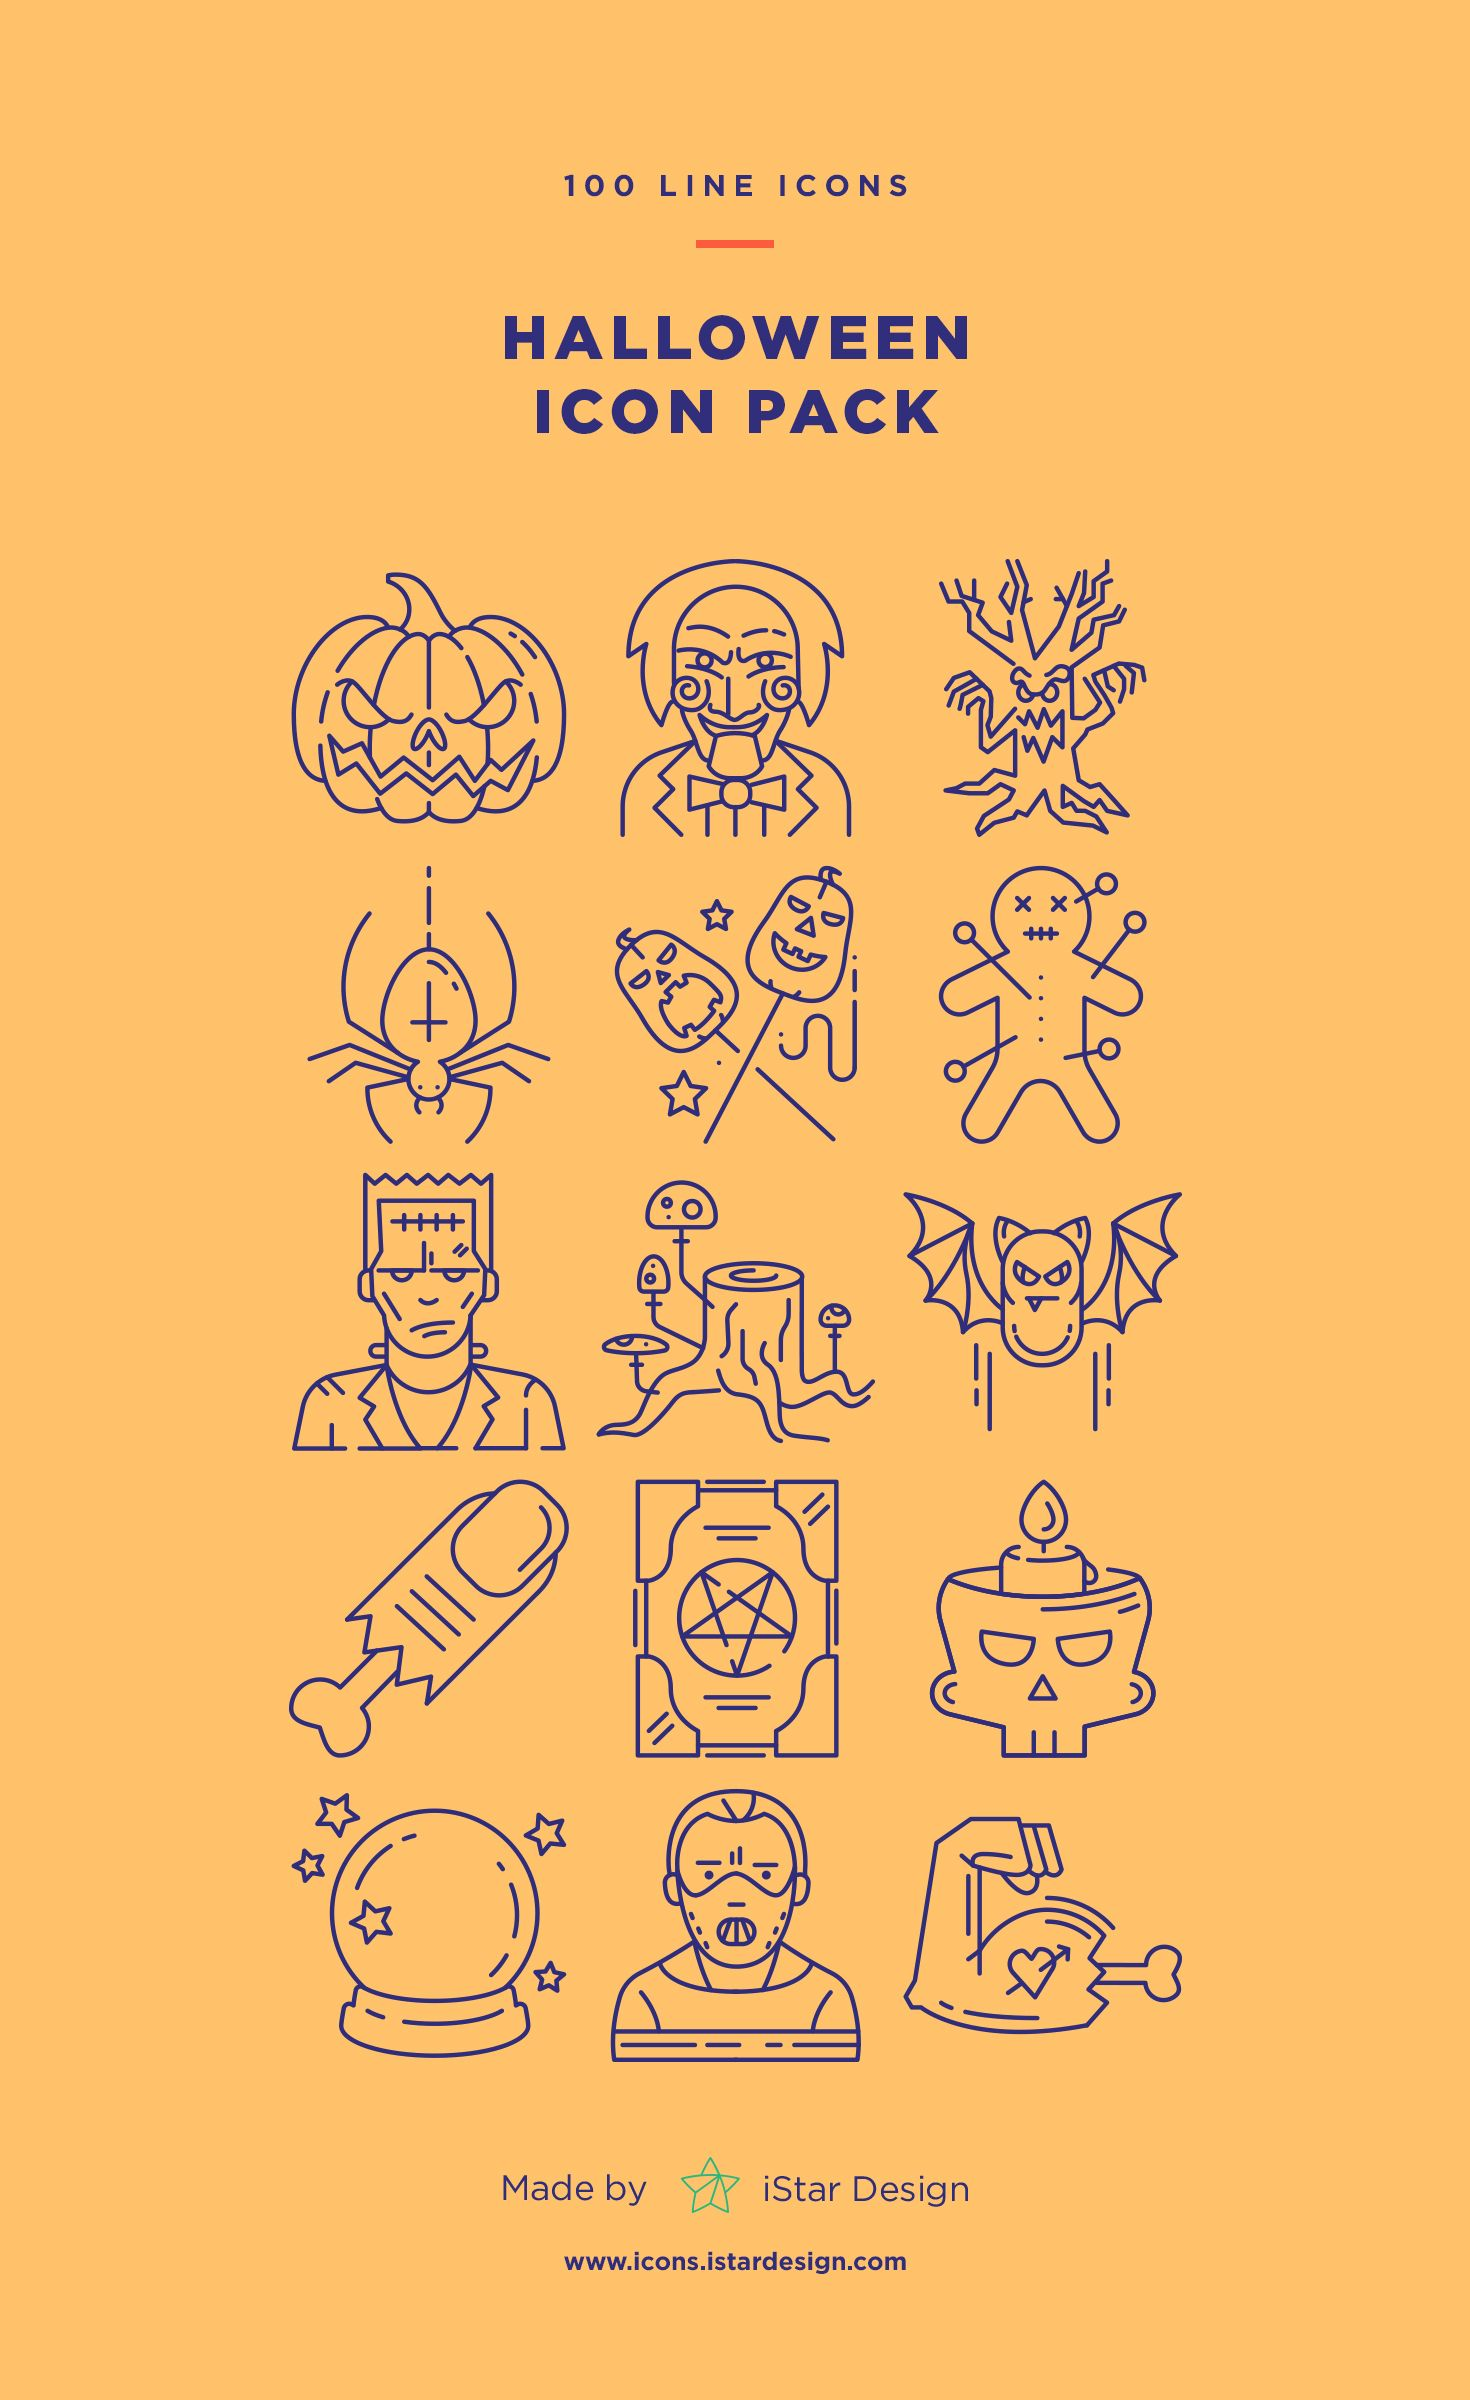 Download Halloween Line Icons Set made by iStar Design